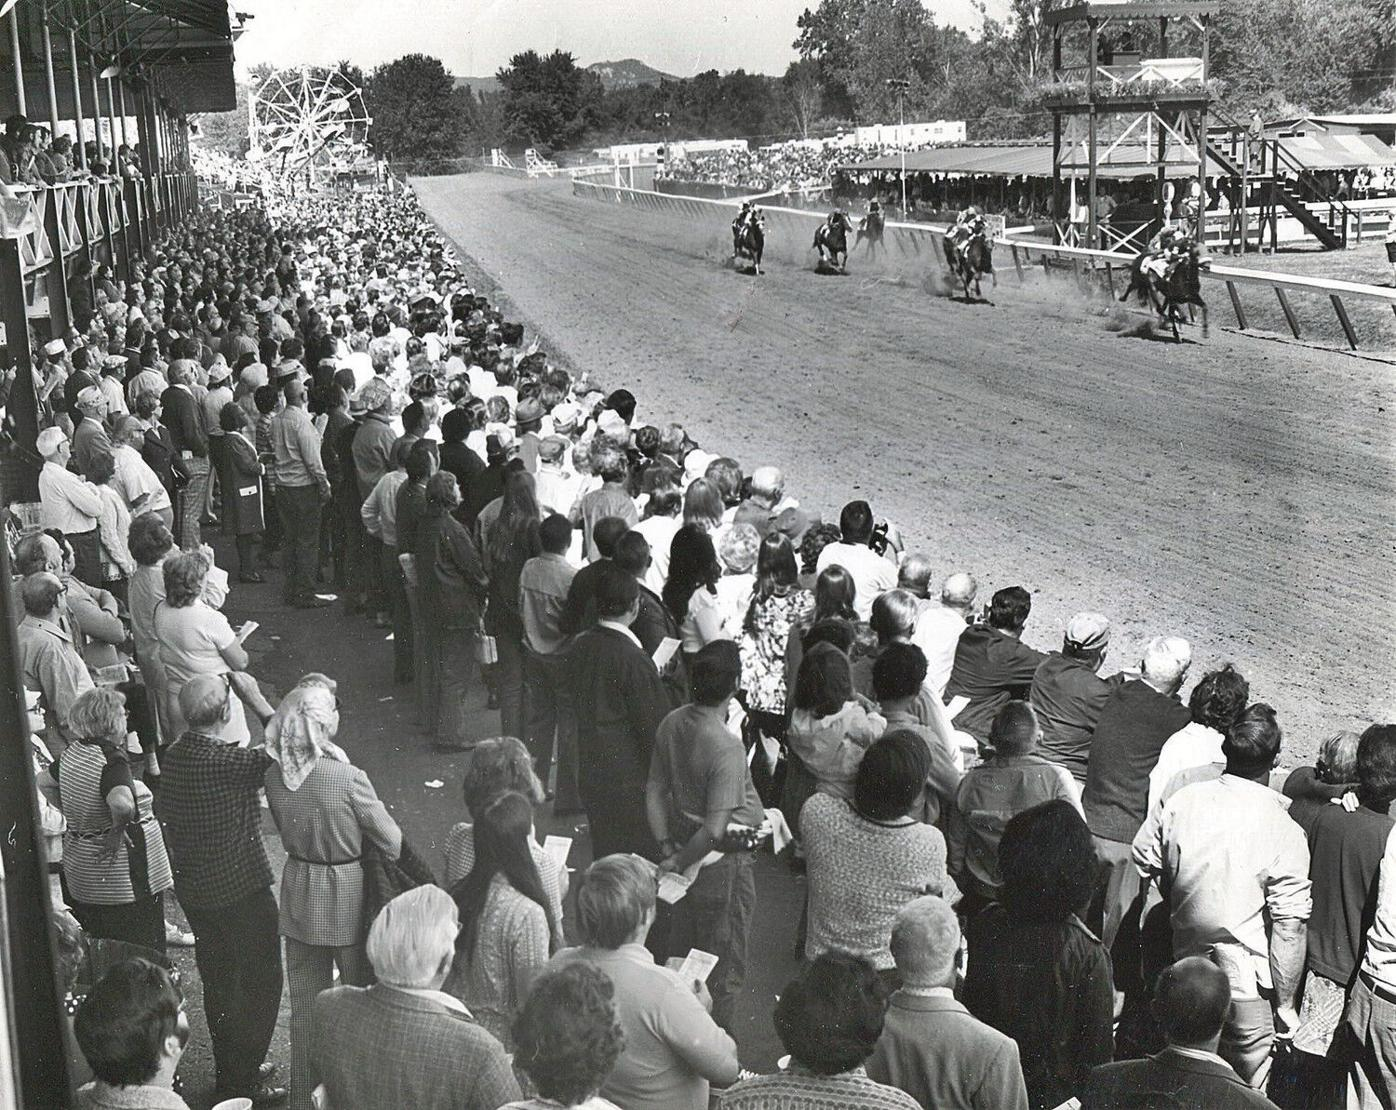 Thoroughbred racing might return to Great Barrington Fairgrounds